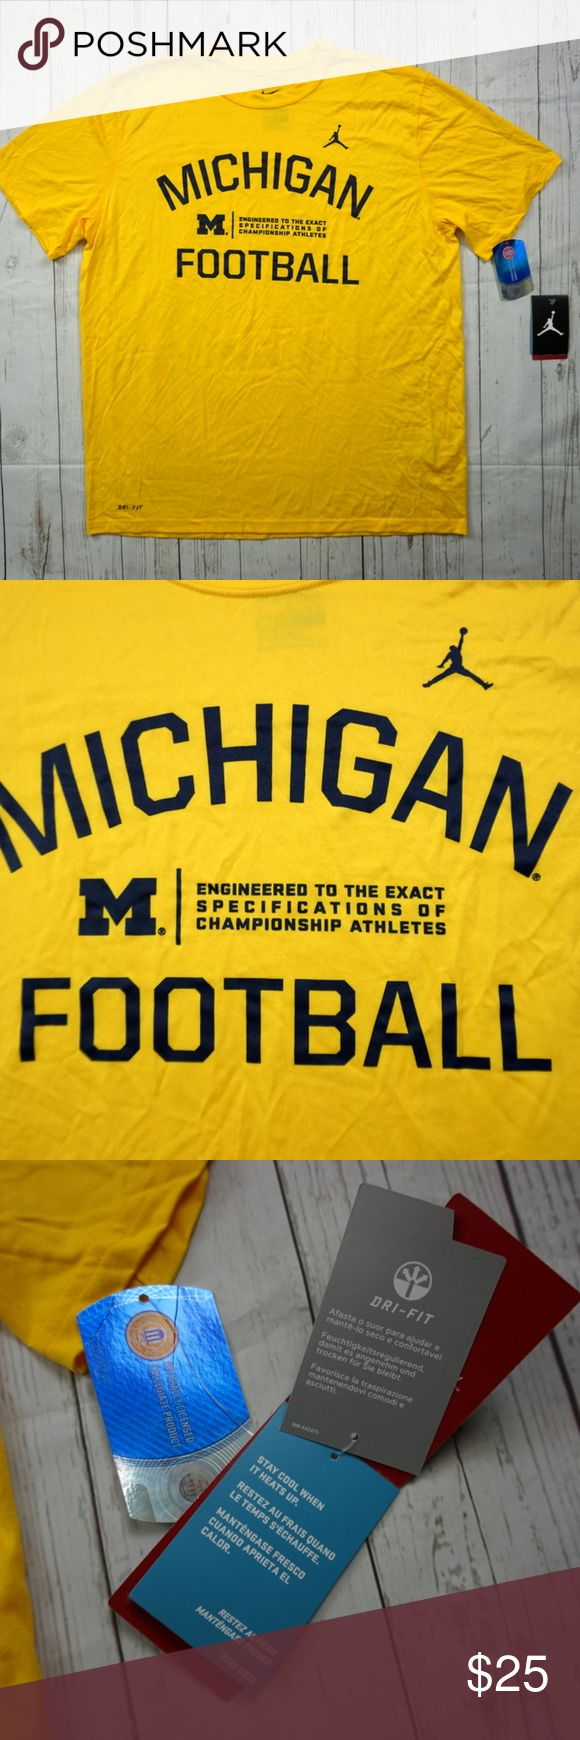 "Michigan Wolverines Football Jumpman Logo T-Shirt Michigan Wolverines Football Jumpman Logo Dri-Fit Jordan Men's XL - NWT  Brand: Jordan Size: Men's XL Material: Polyester (DriFit)  Detailed Measurements: (Front Side of Garment has been measured laying flat on a table)  Measurements  Sleeves:             9.5"" inches Chest:                22.5"" inches Length:              29.5"" inches  Ships in 1 business day or less from a clean and smoke free environment. Jordan Shirts Tees - Short Sleeve"